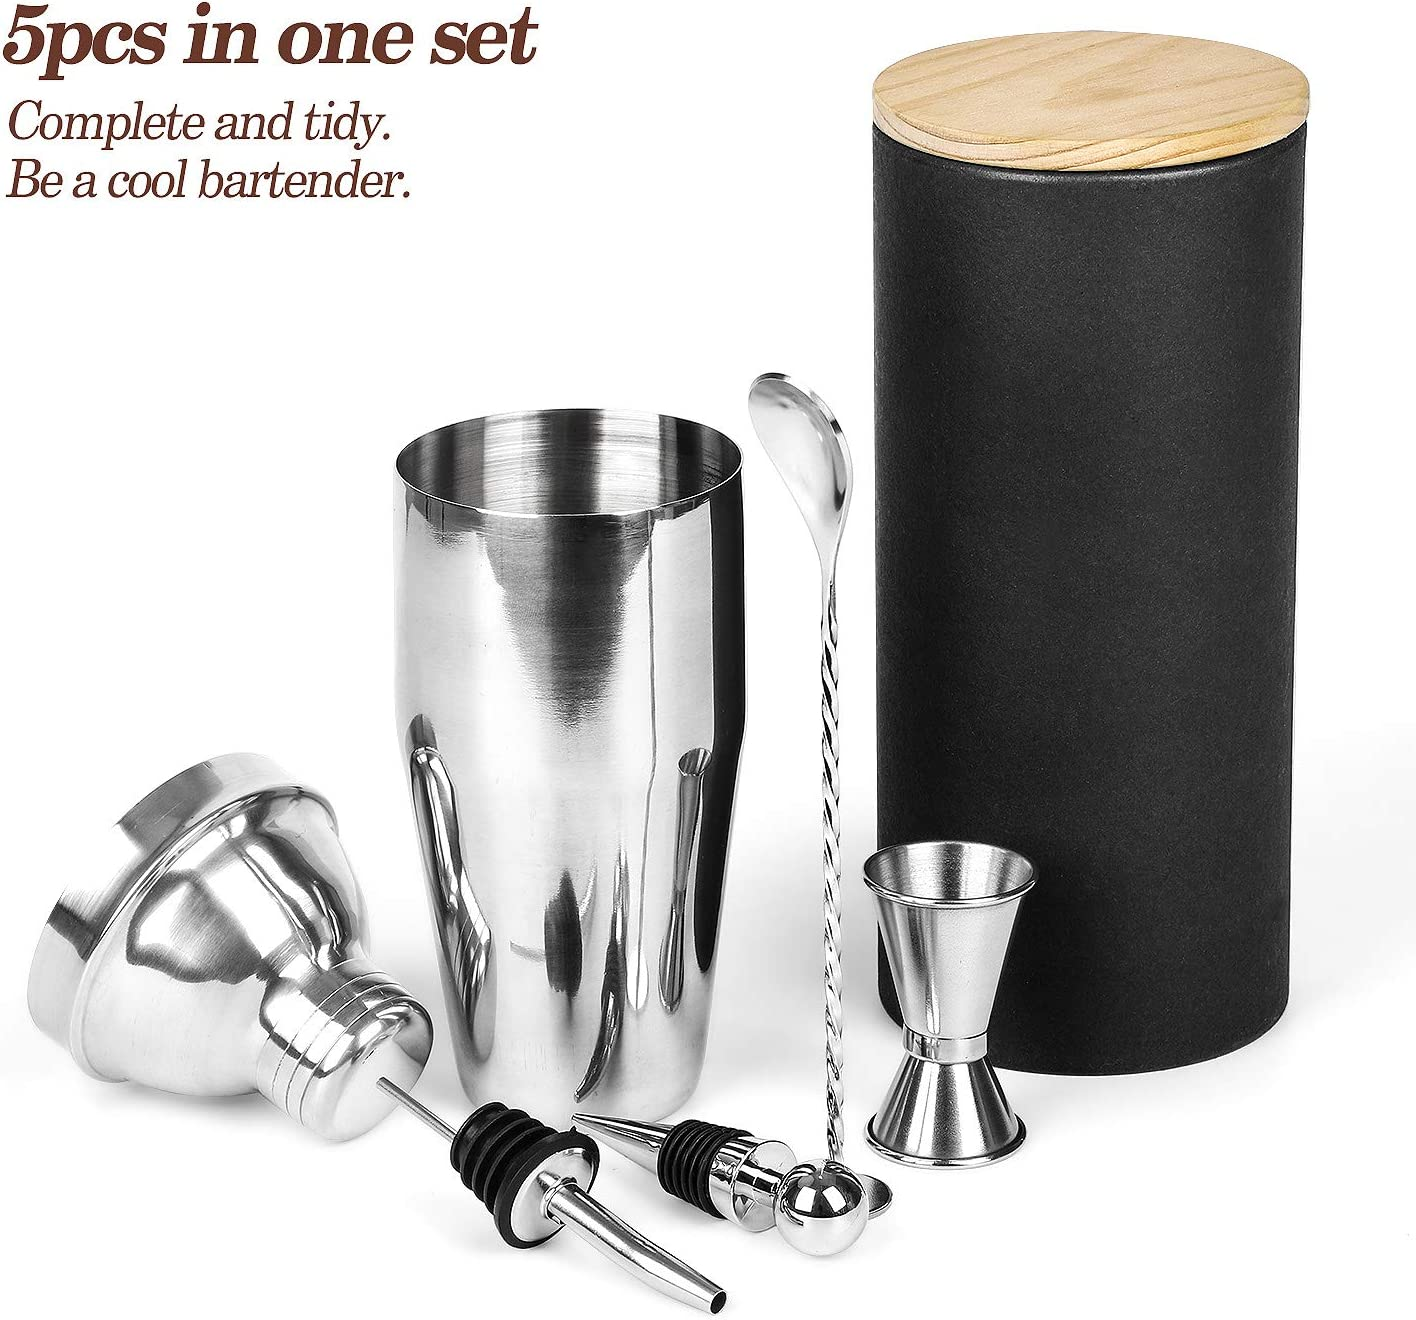 Cocktail Shaker Set Stainless Steel, 5-Piece Bartender Kit with wood bottle container, Perfect Home Bartender kit and Cocktail Shaker Set For an Awesome Drinking Experience, Best Gift Choice.